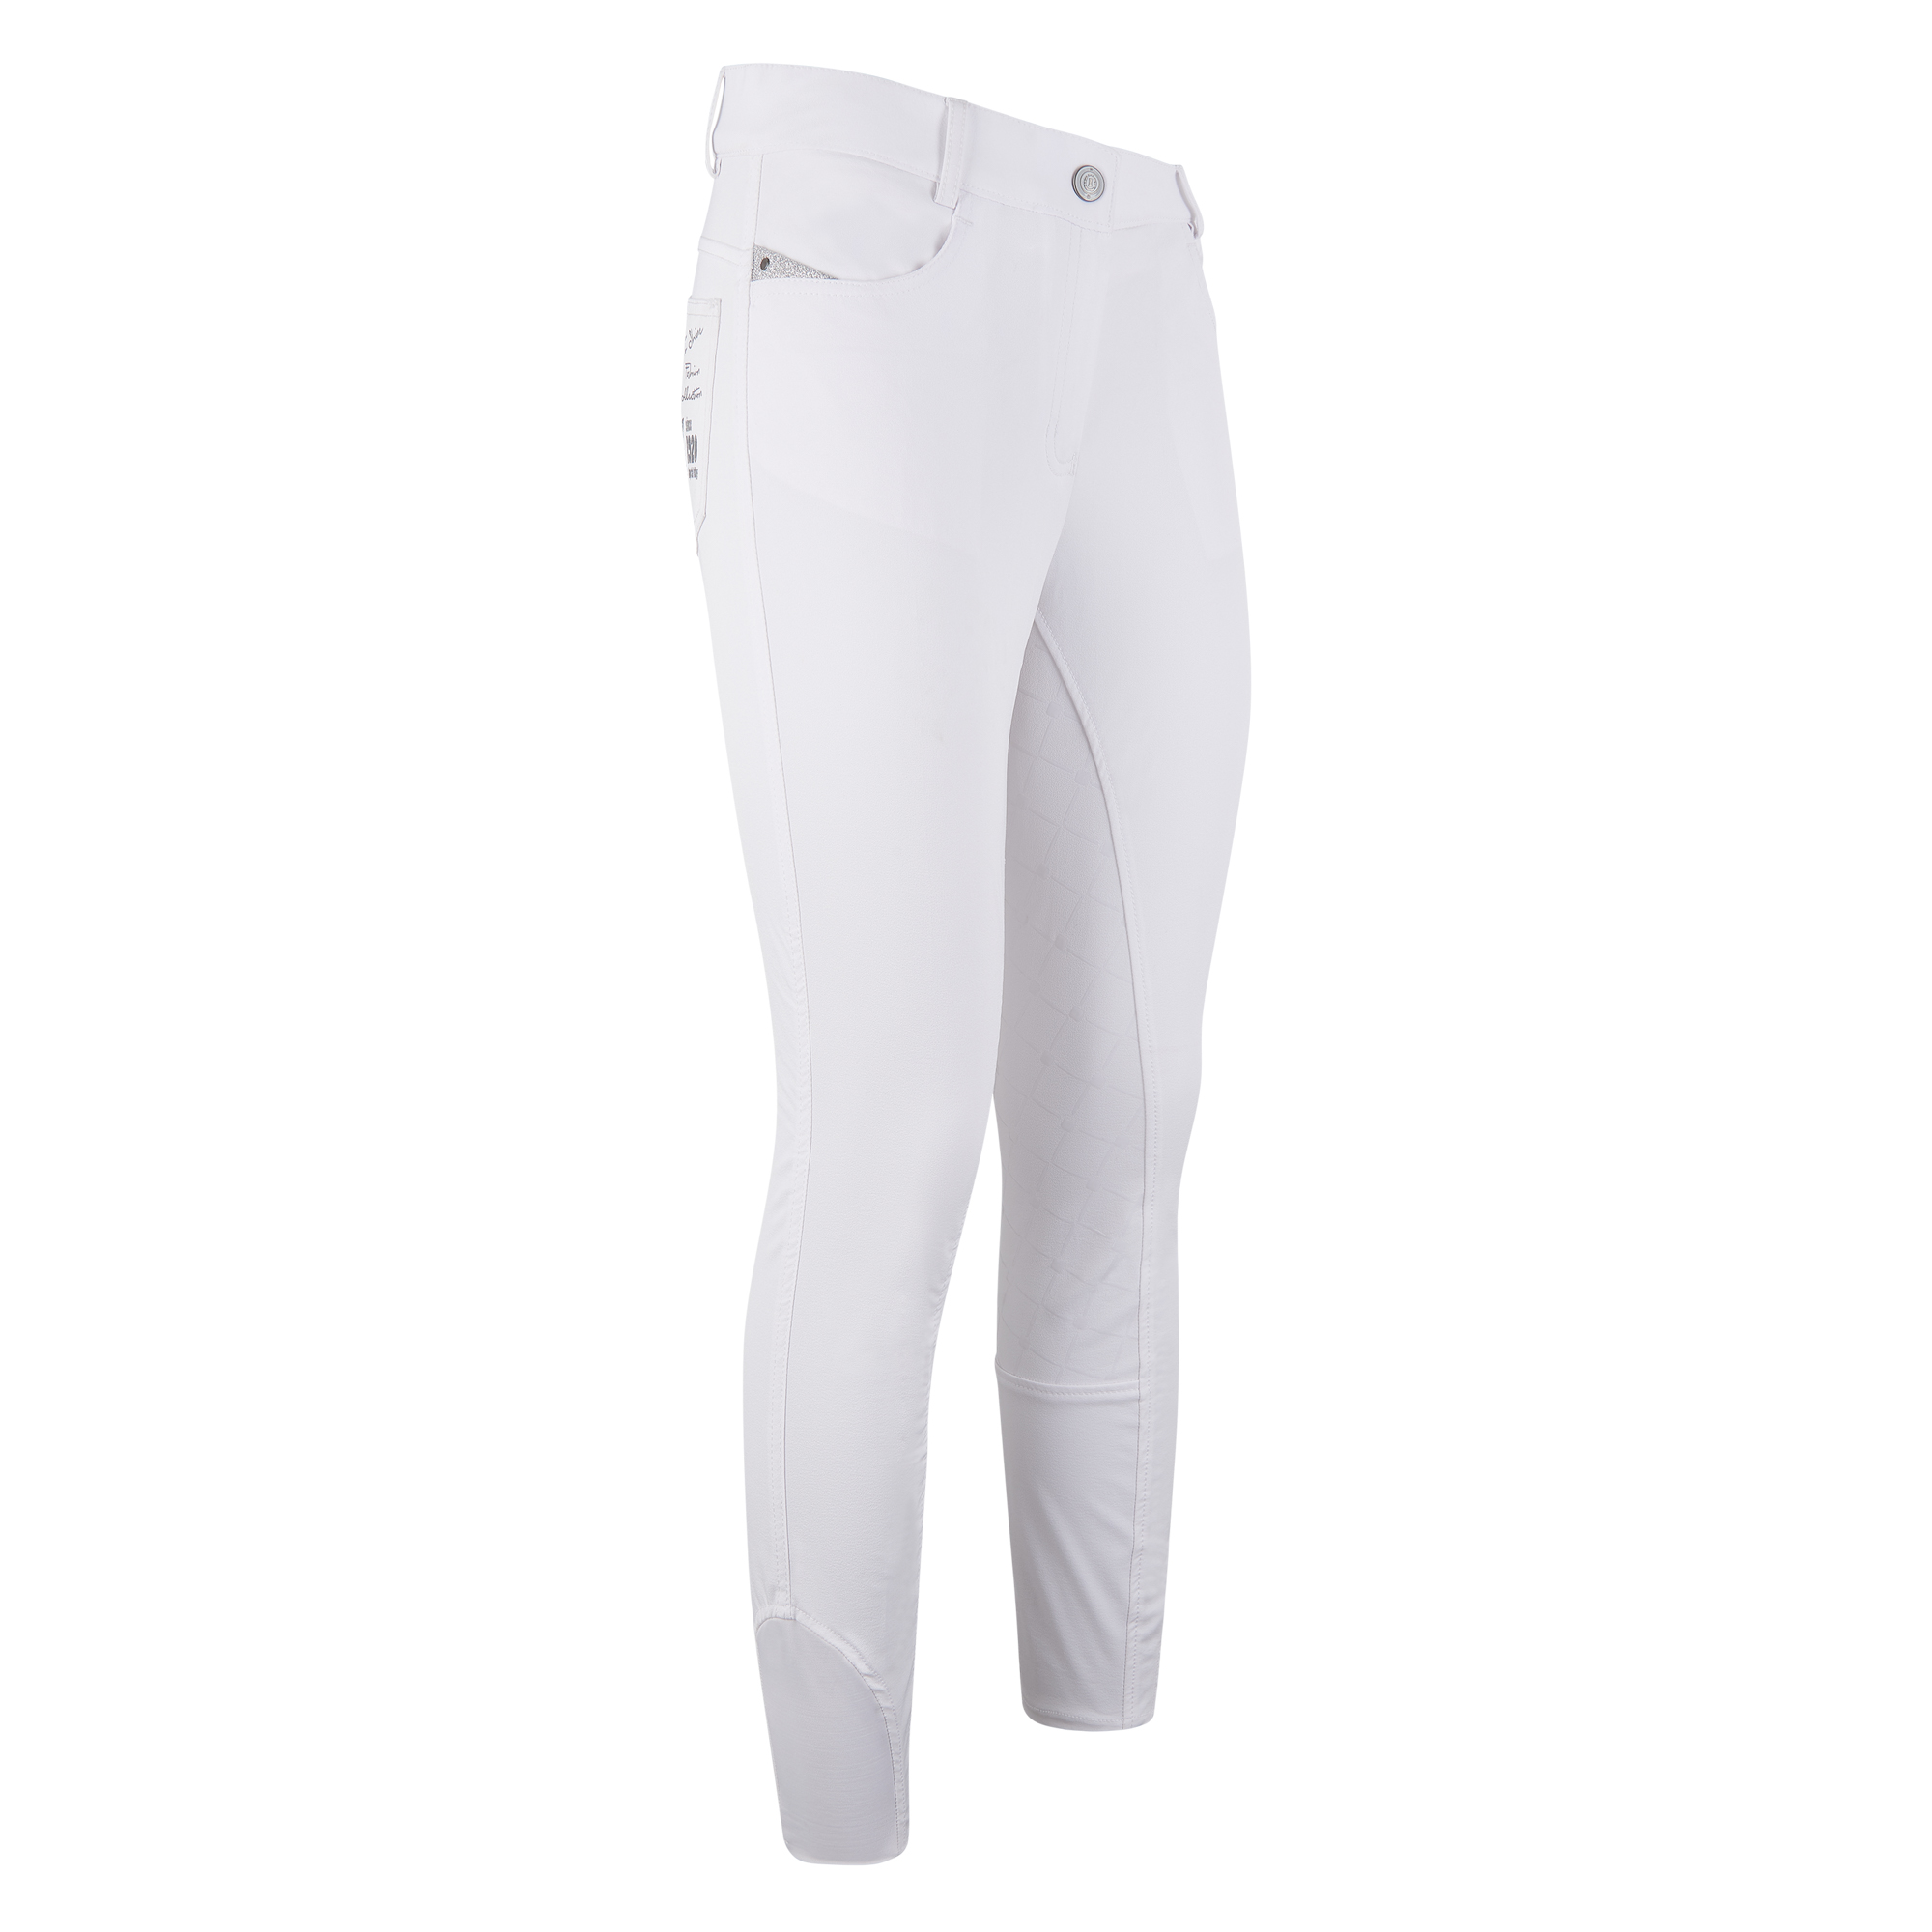 Imperial Riding Riding breeches Topper SFS